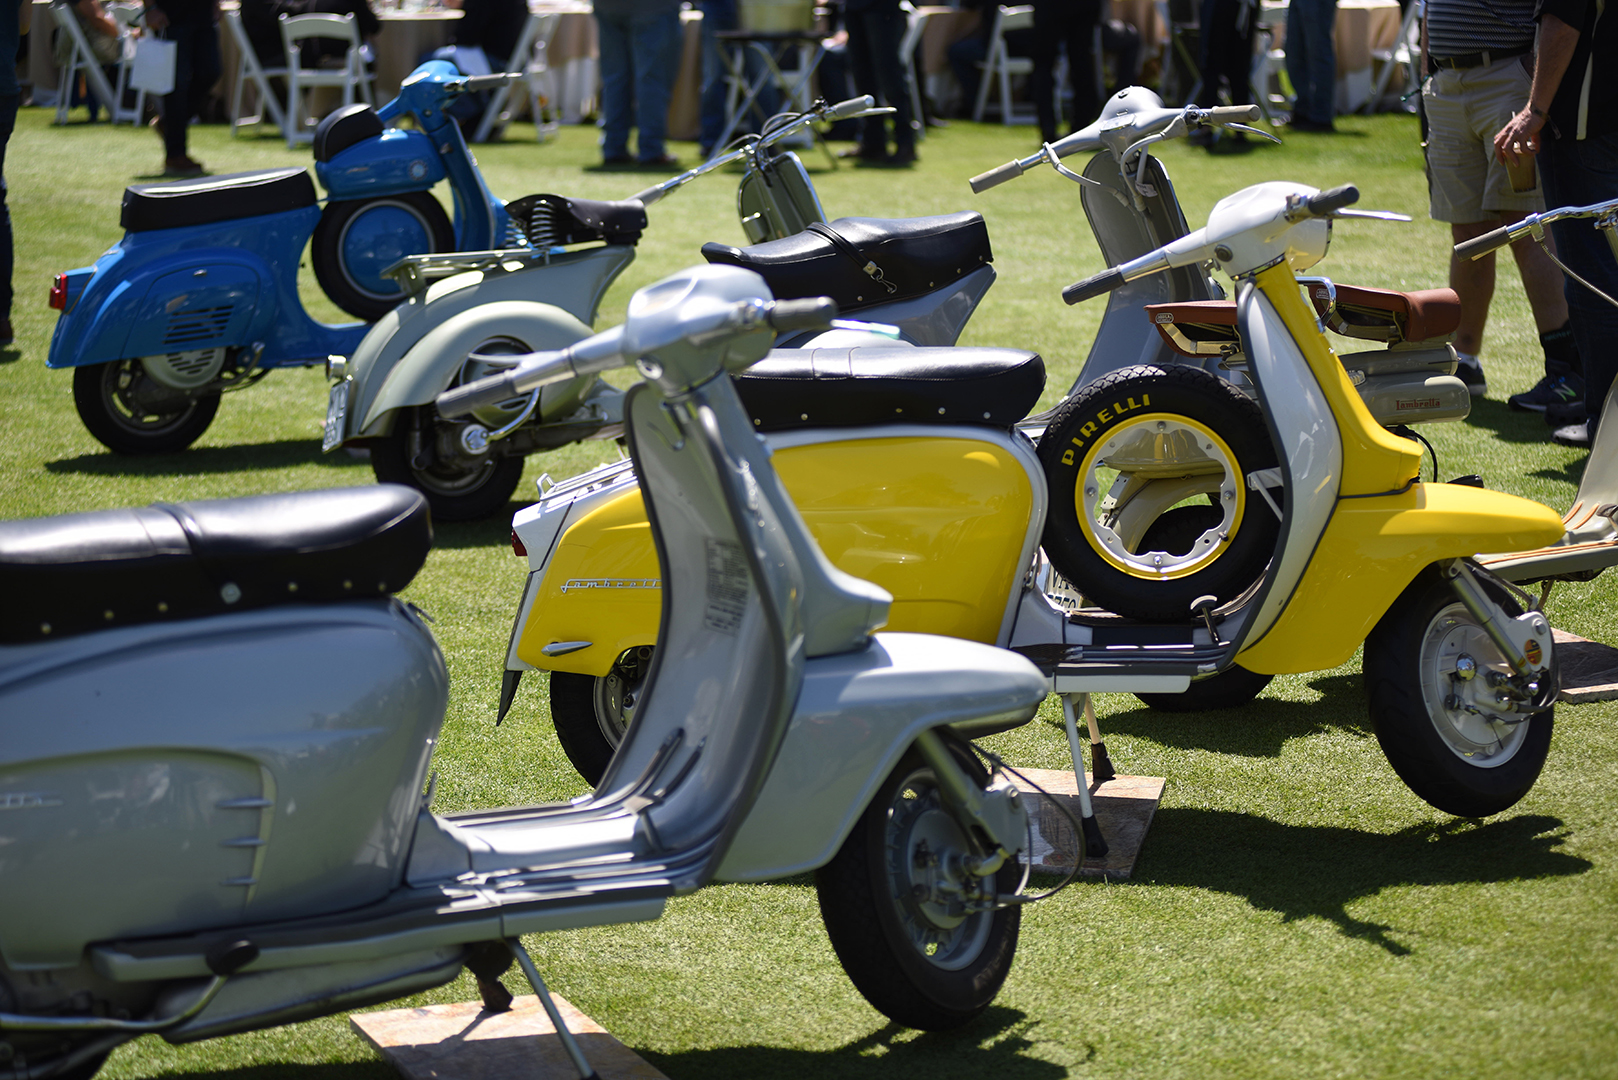 Scooters are a big part of the Quail Motorcycle Gathering. These Vespas and Lambrettas are part of the Gianluca Baldo collection.